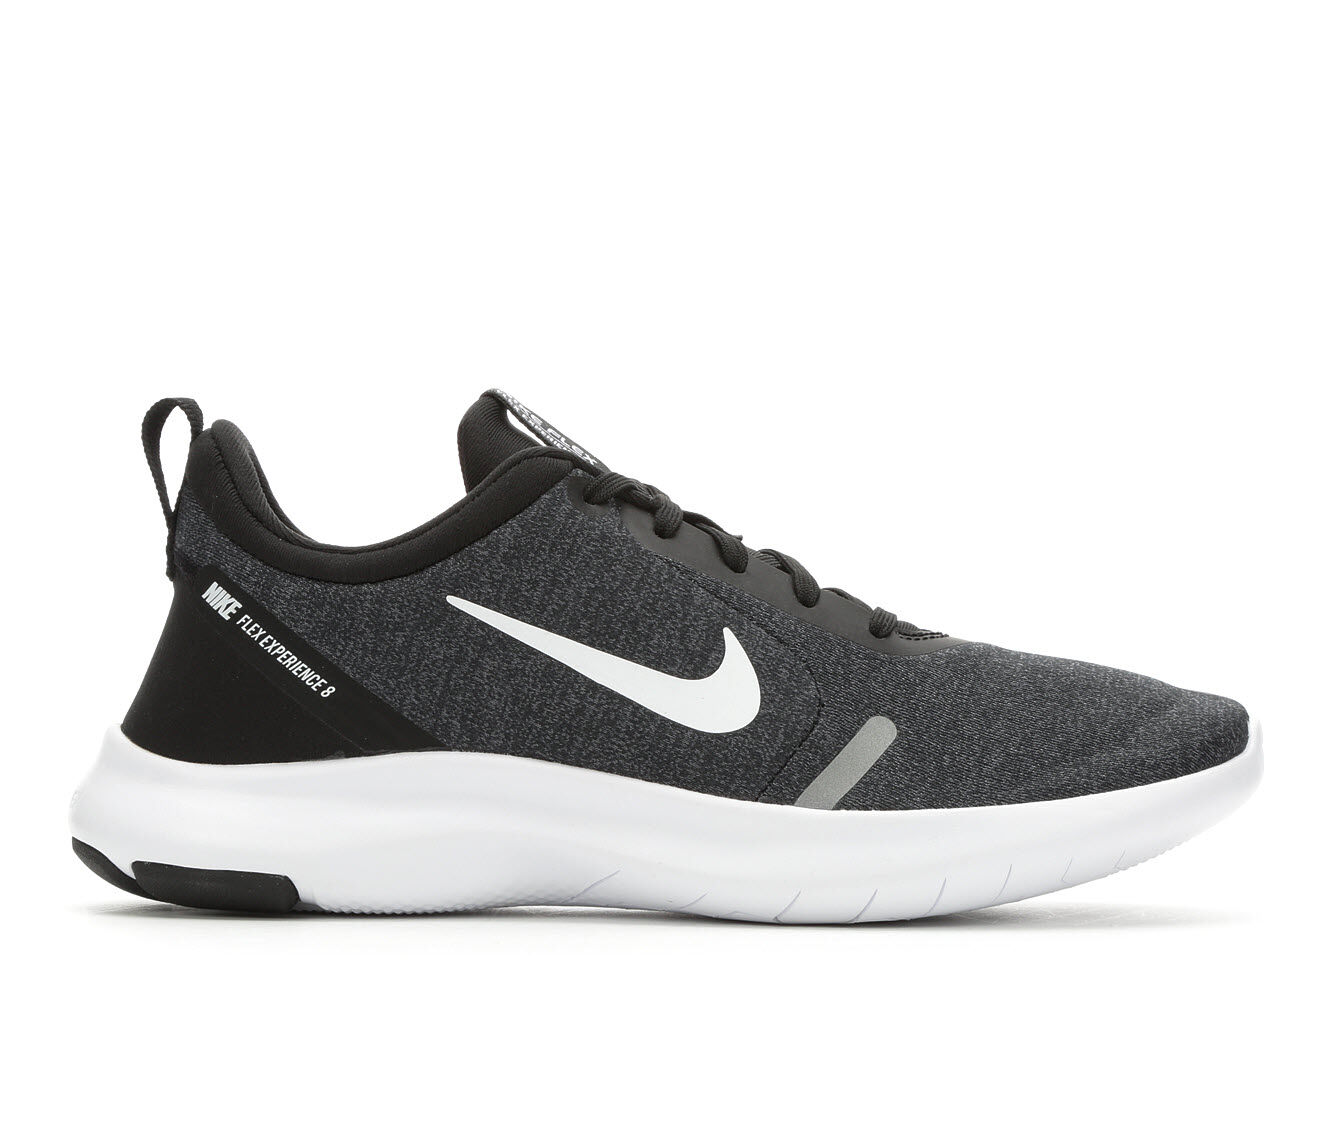 The Whole Network Women's Nike Flex Experience Run 8 Running Shoes Black/Wht/Silv